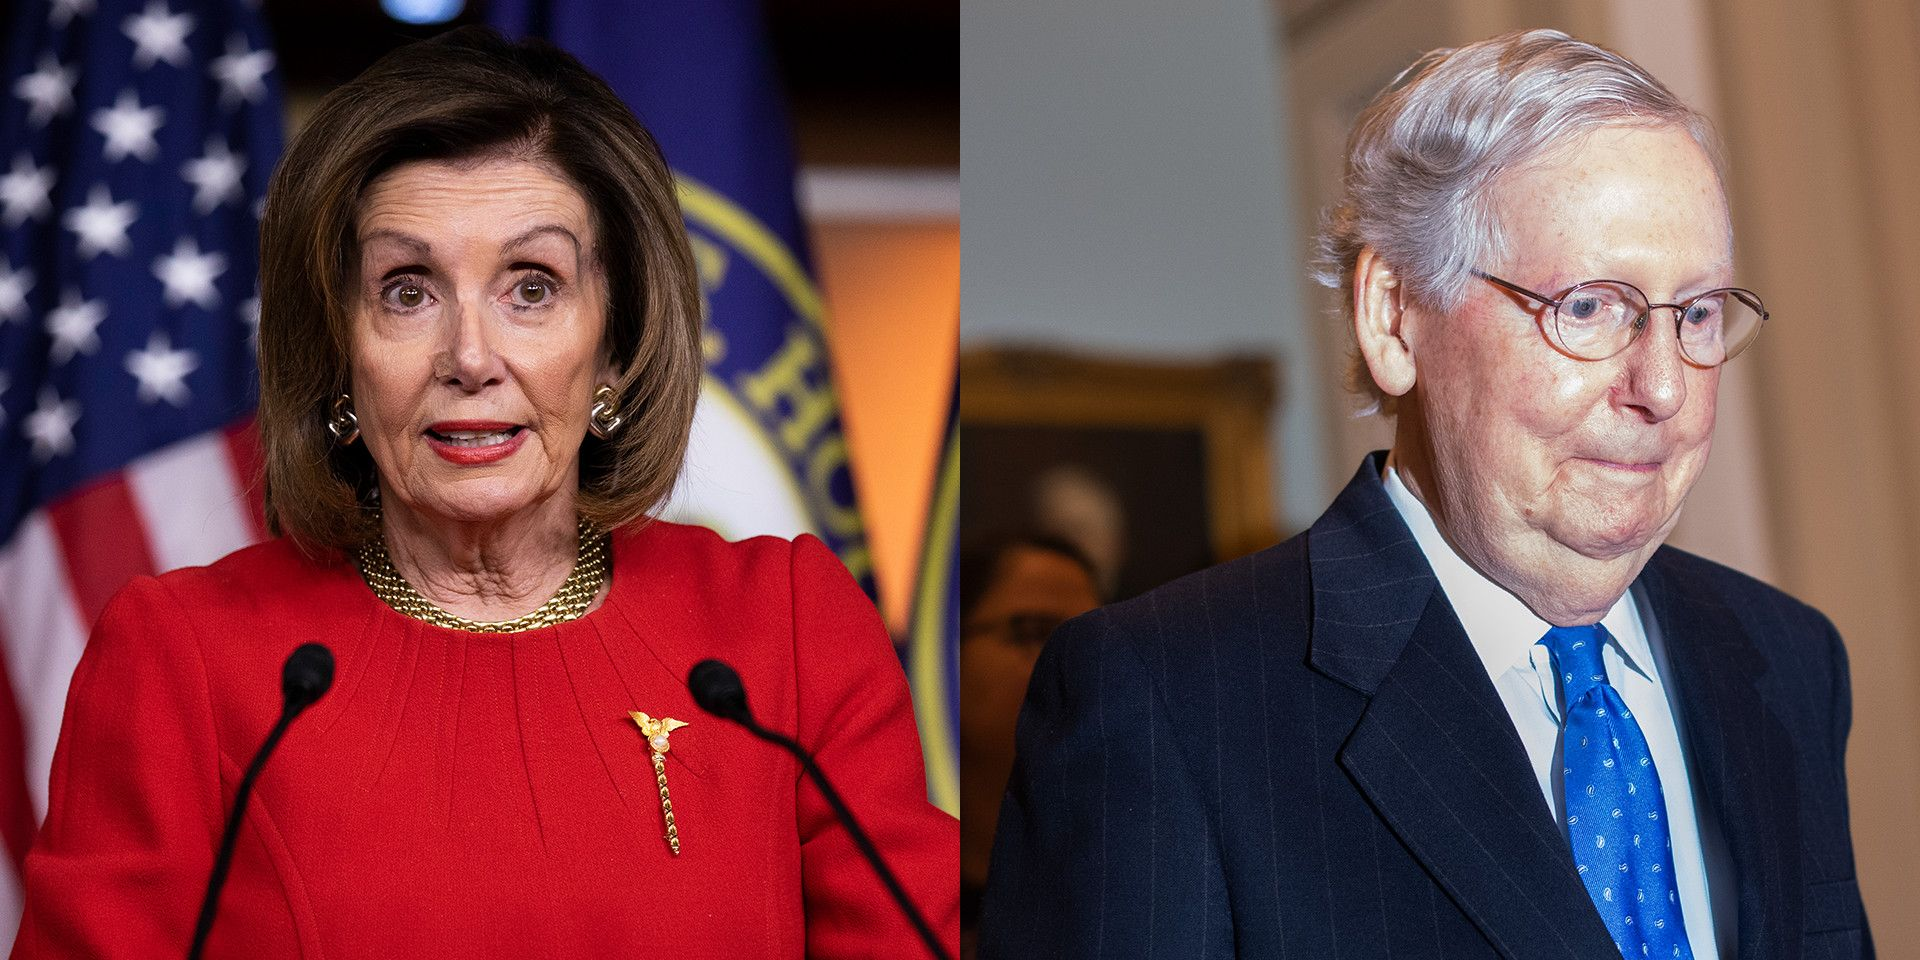 Turns Out Mitch McConnell Might Have More Soft Spots in His Caucus Than Nancy Pelosi Does